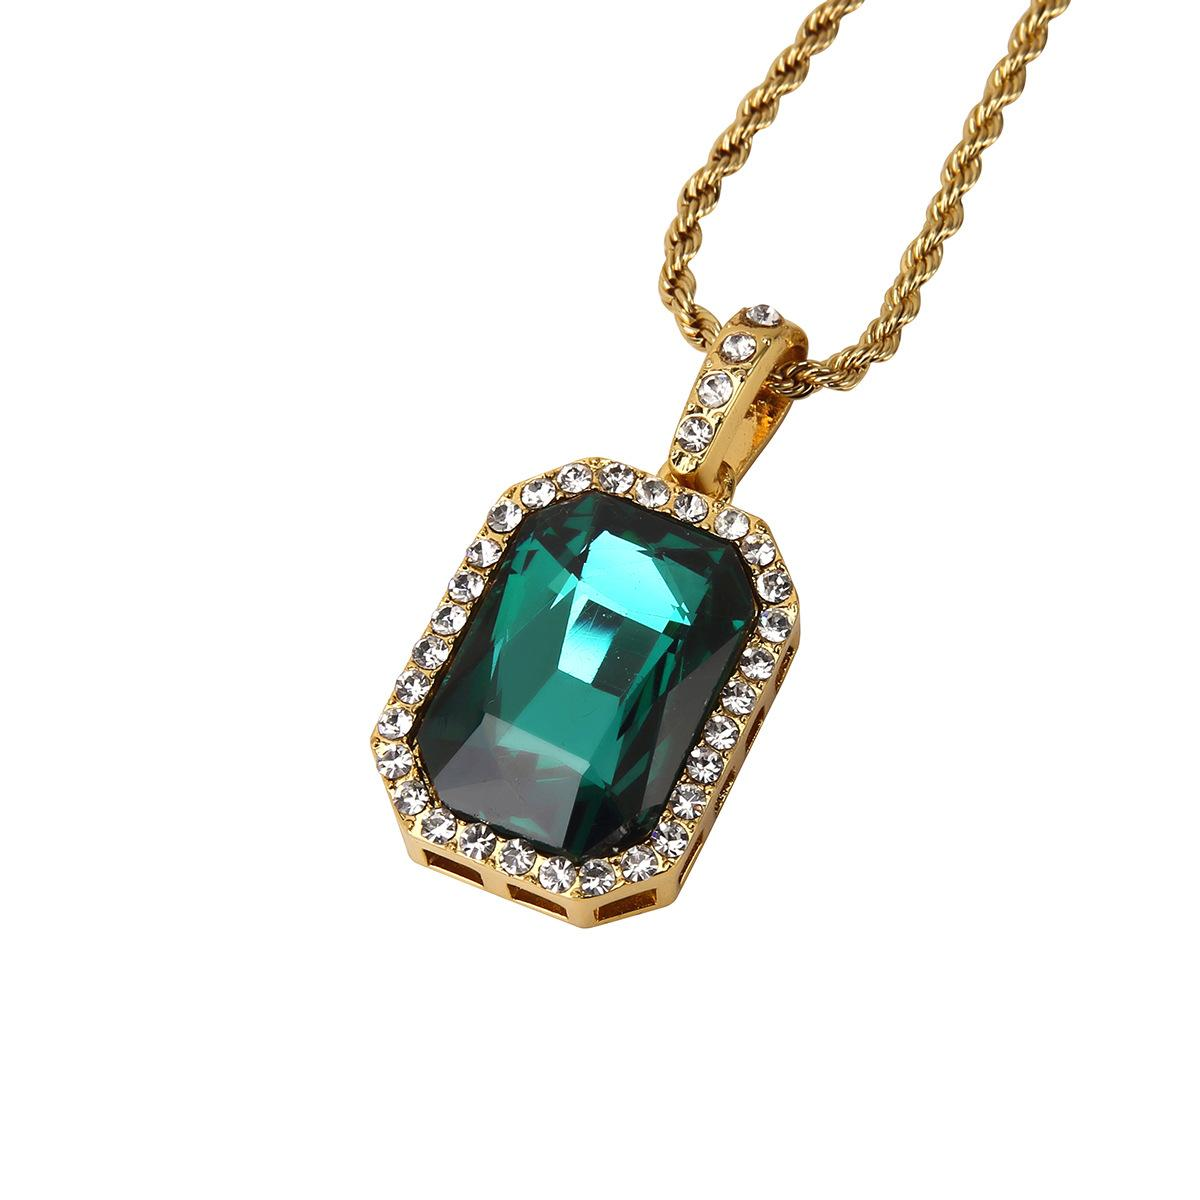 Wholesale women mens ruby diamond necklaces plated fashion hip hop wholesale women mens ruby diamond necklaces plated fashion hip hop jewelry gold hater chains punk rock micro men pendant necklace key necklace bar pendant mozeypictures Choice Image